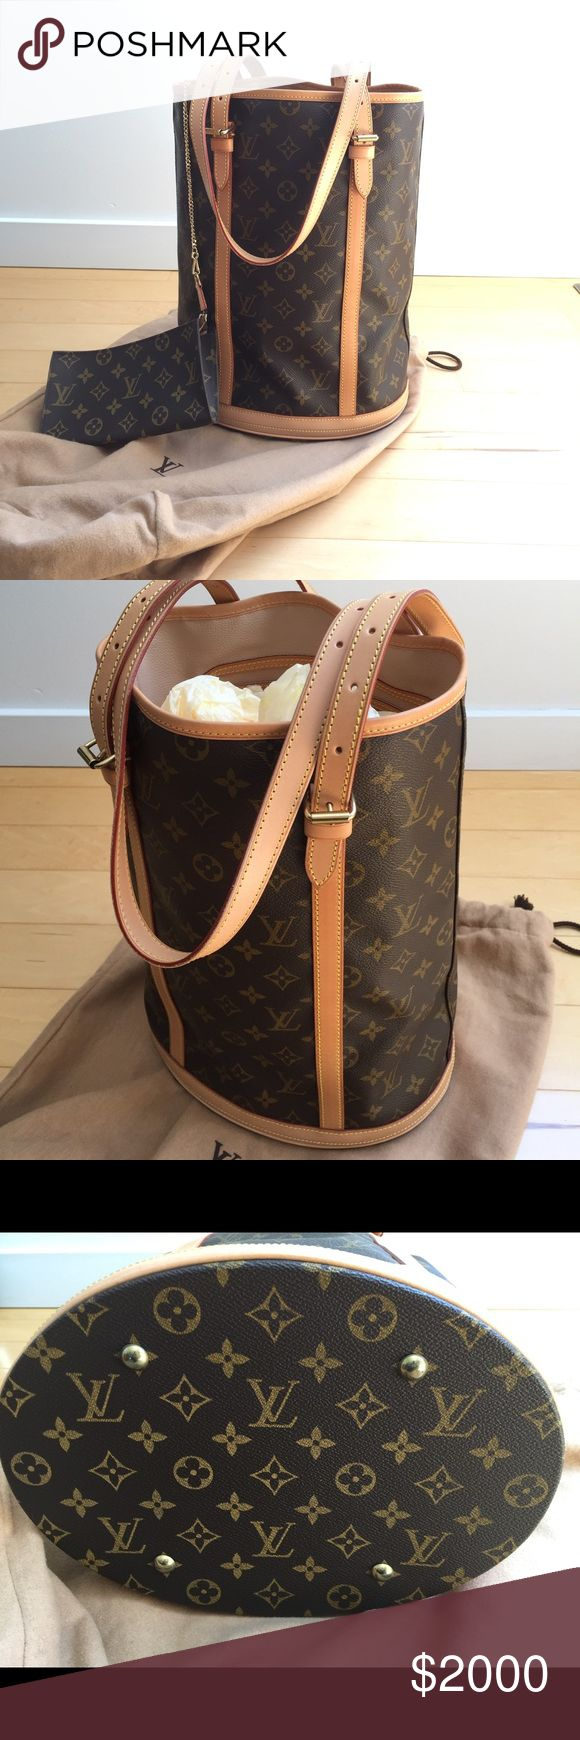 Authentic Louis Vuitton Large Bucket Never used!!!!!! Serious inquires only to buy! Louis Vuitton Bags Shoulder Bags